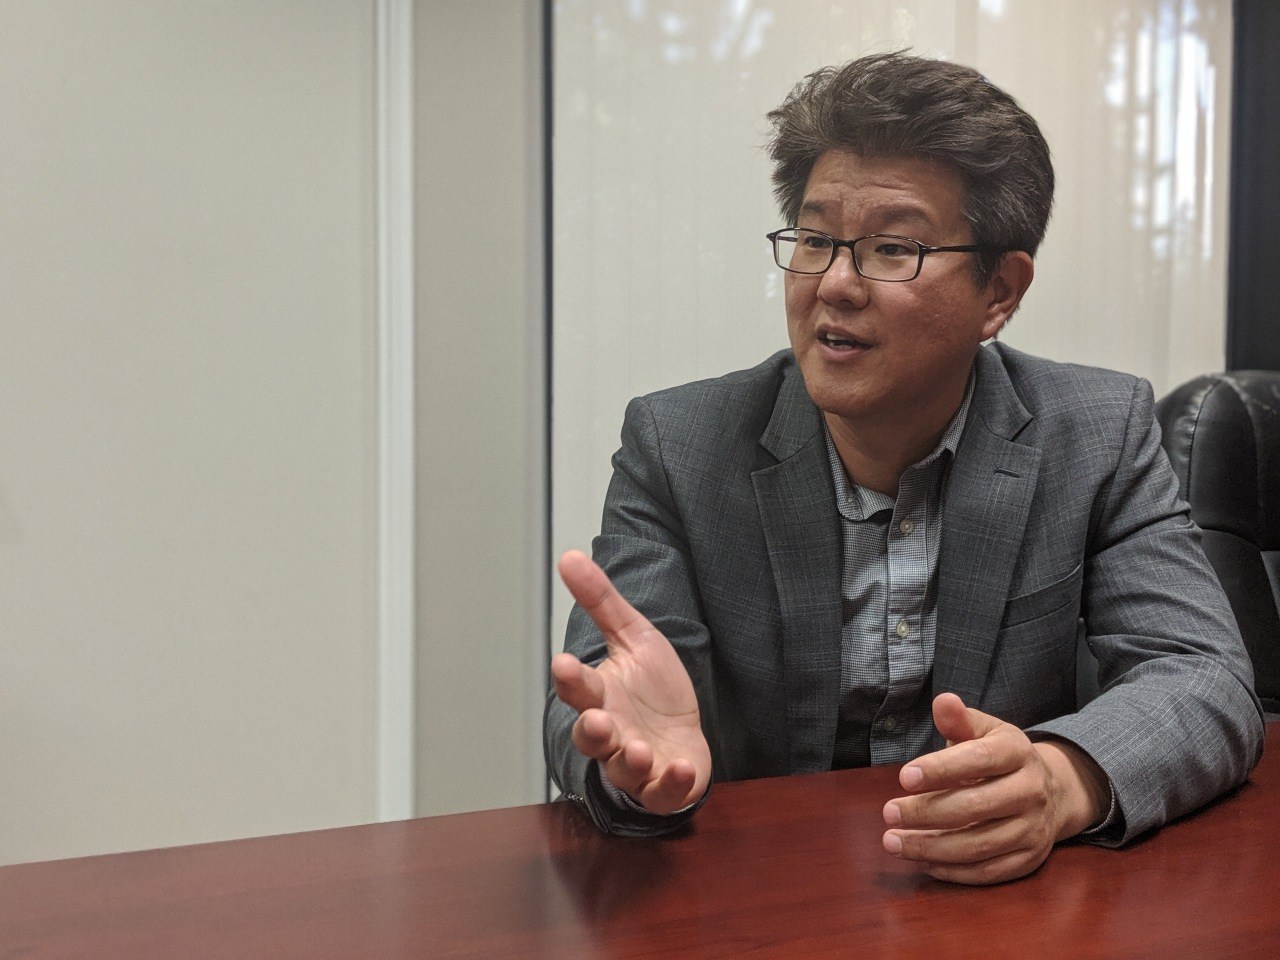 Lee Young-ki, acting managing director of Kotra Silicon Valley, speaks during an interview in his office in San Jose, California, on Wednesday. (Kotra Silicon Valley)